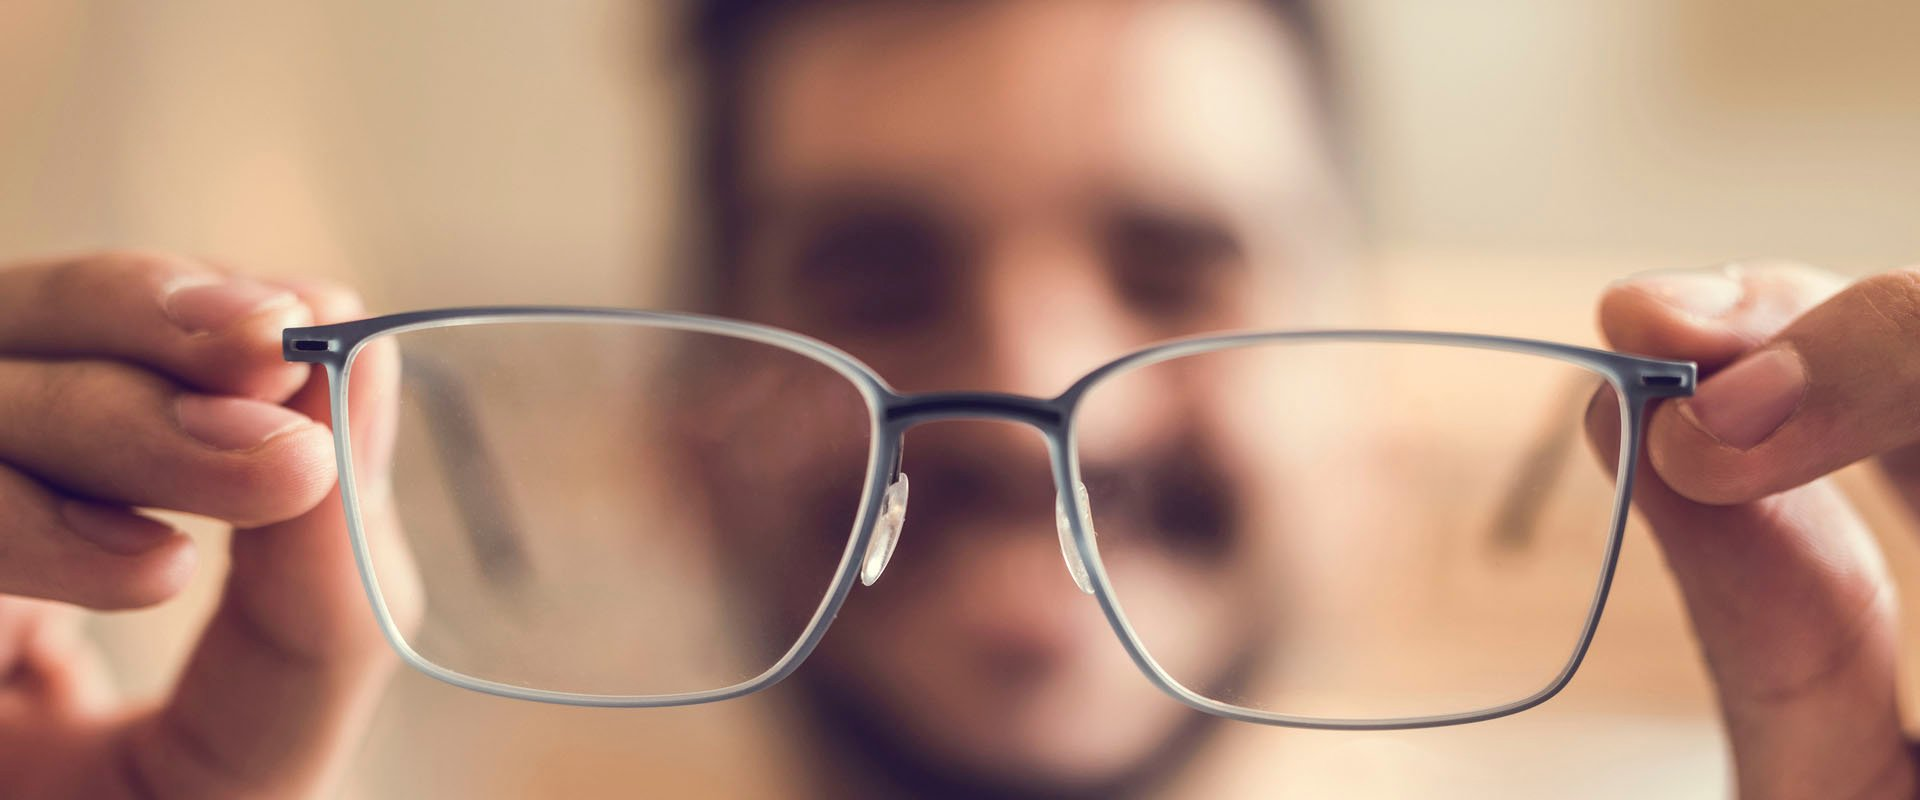 World Sight Day 2021: From theme to history, everything you should know